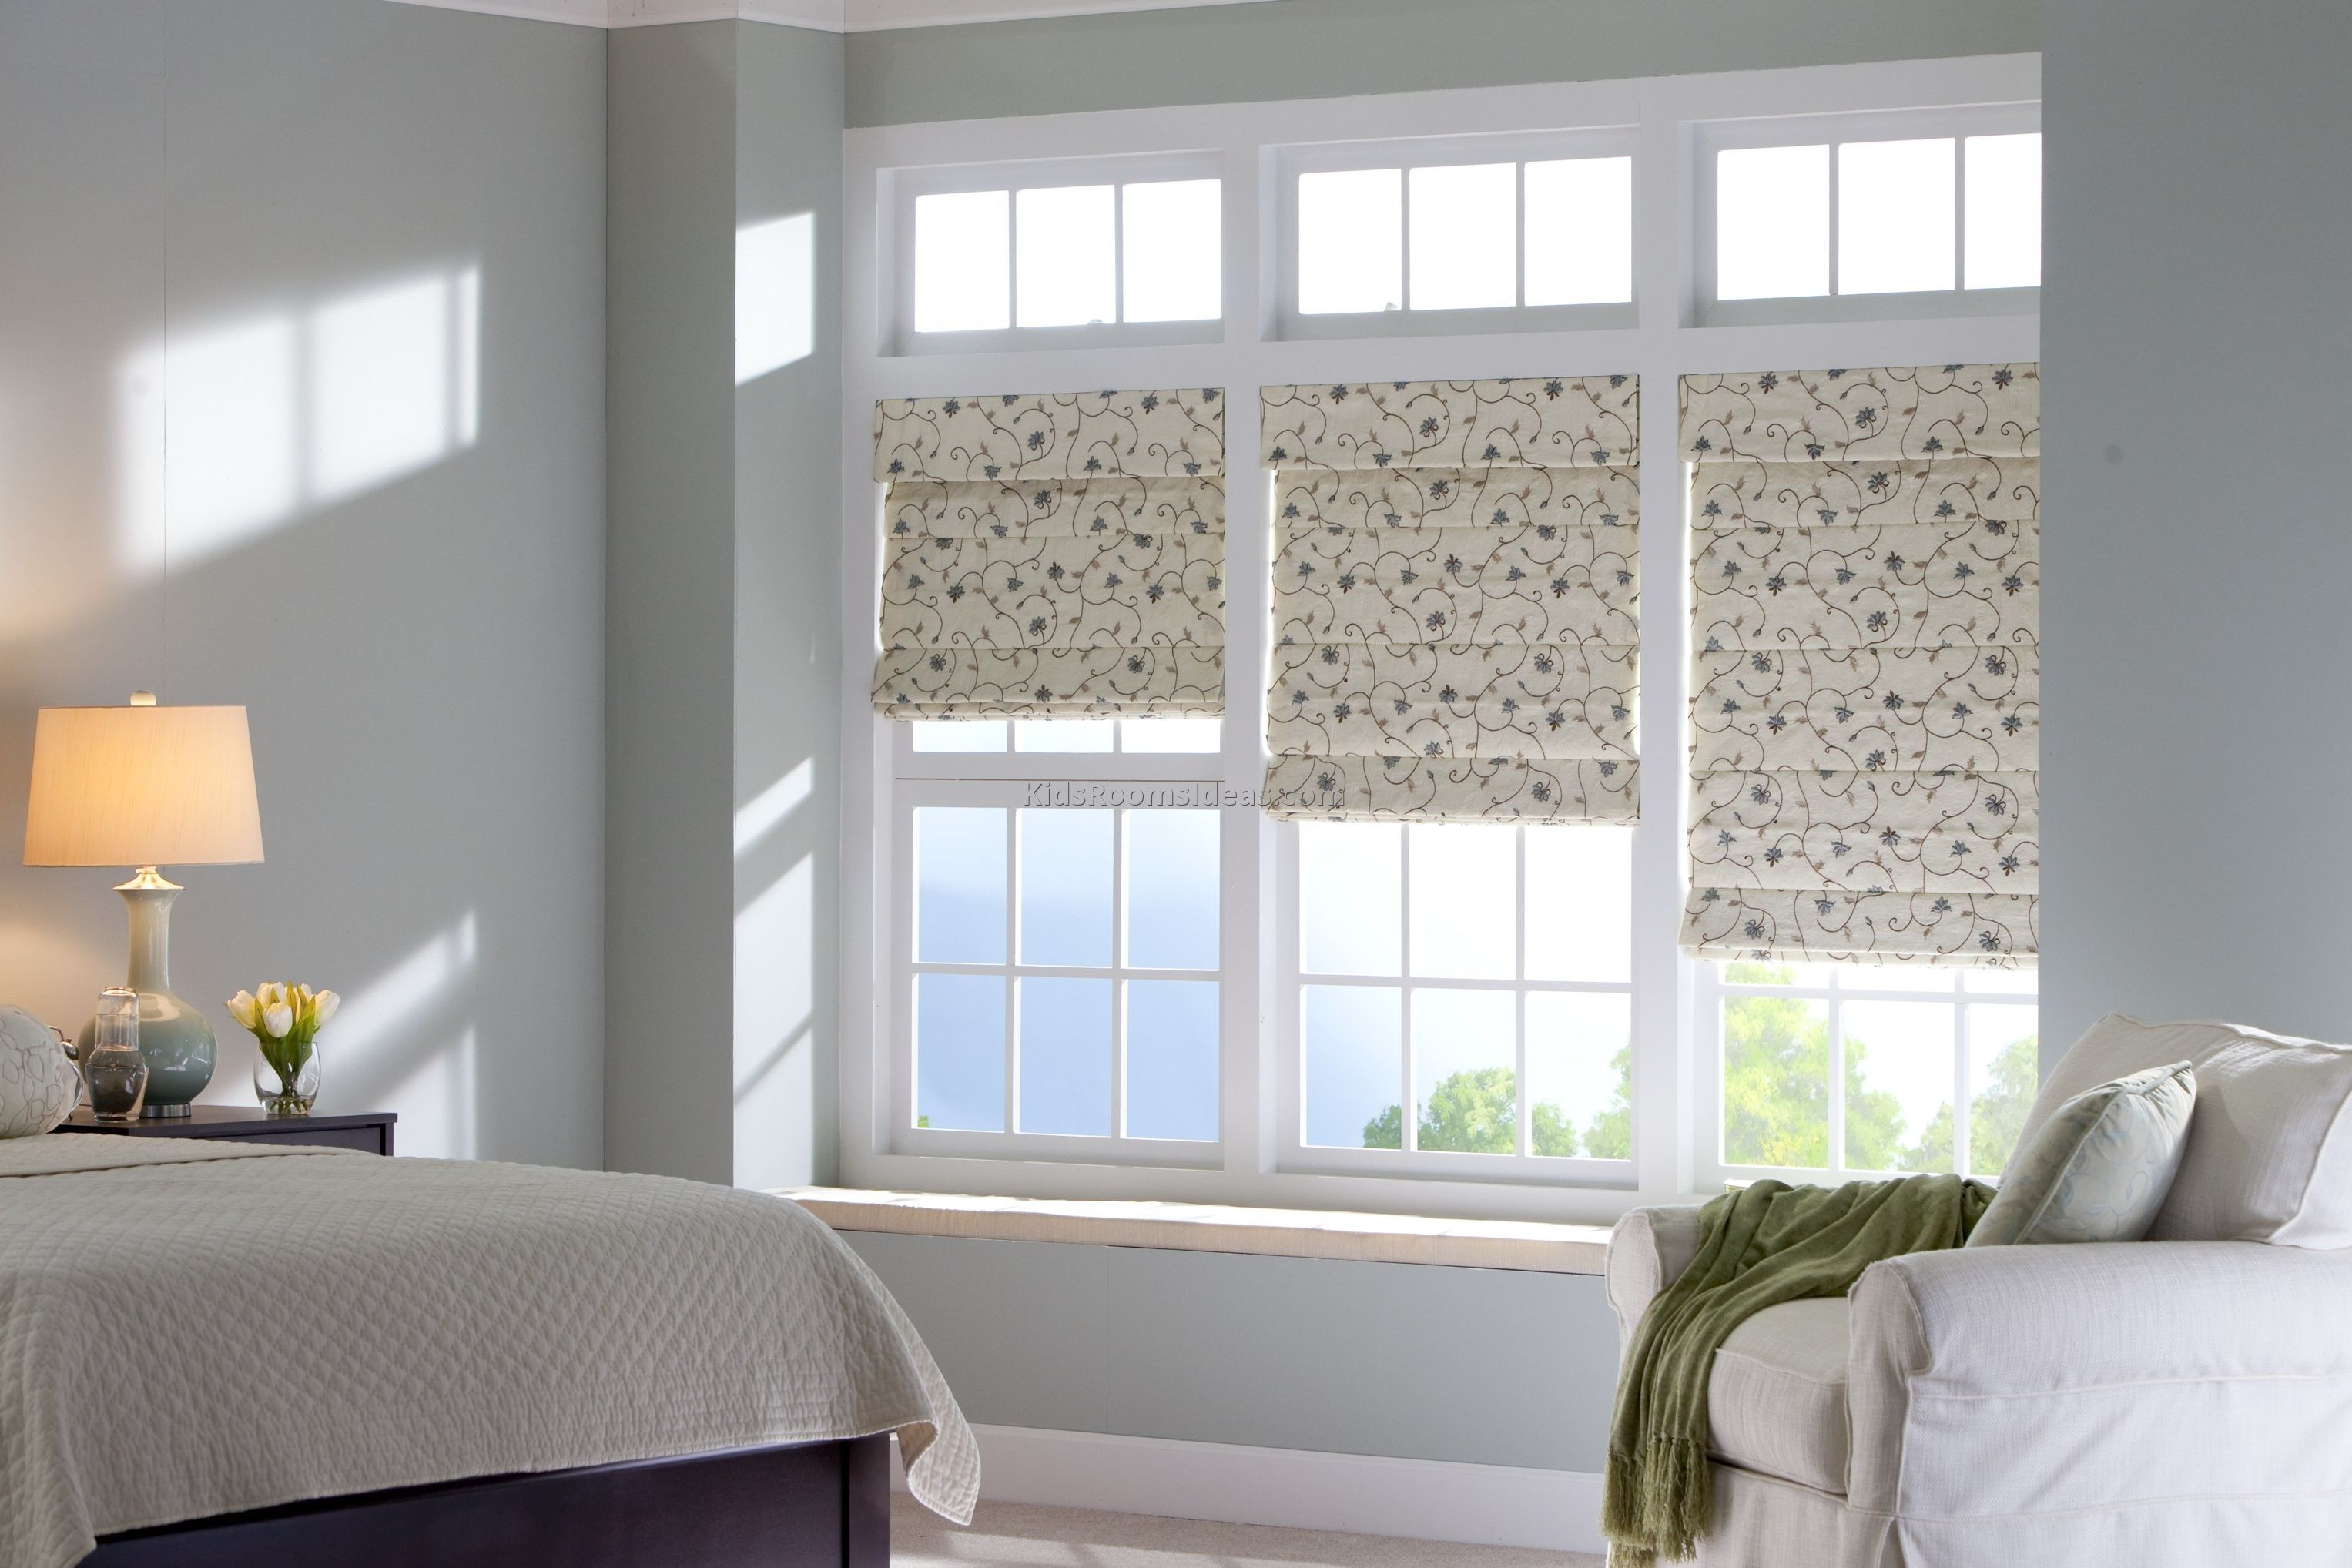 Bed against window with curtains  image result for solar shade on window behind bed  bedroom shades